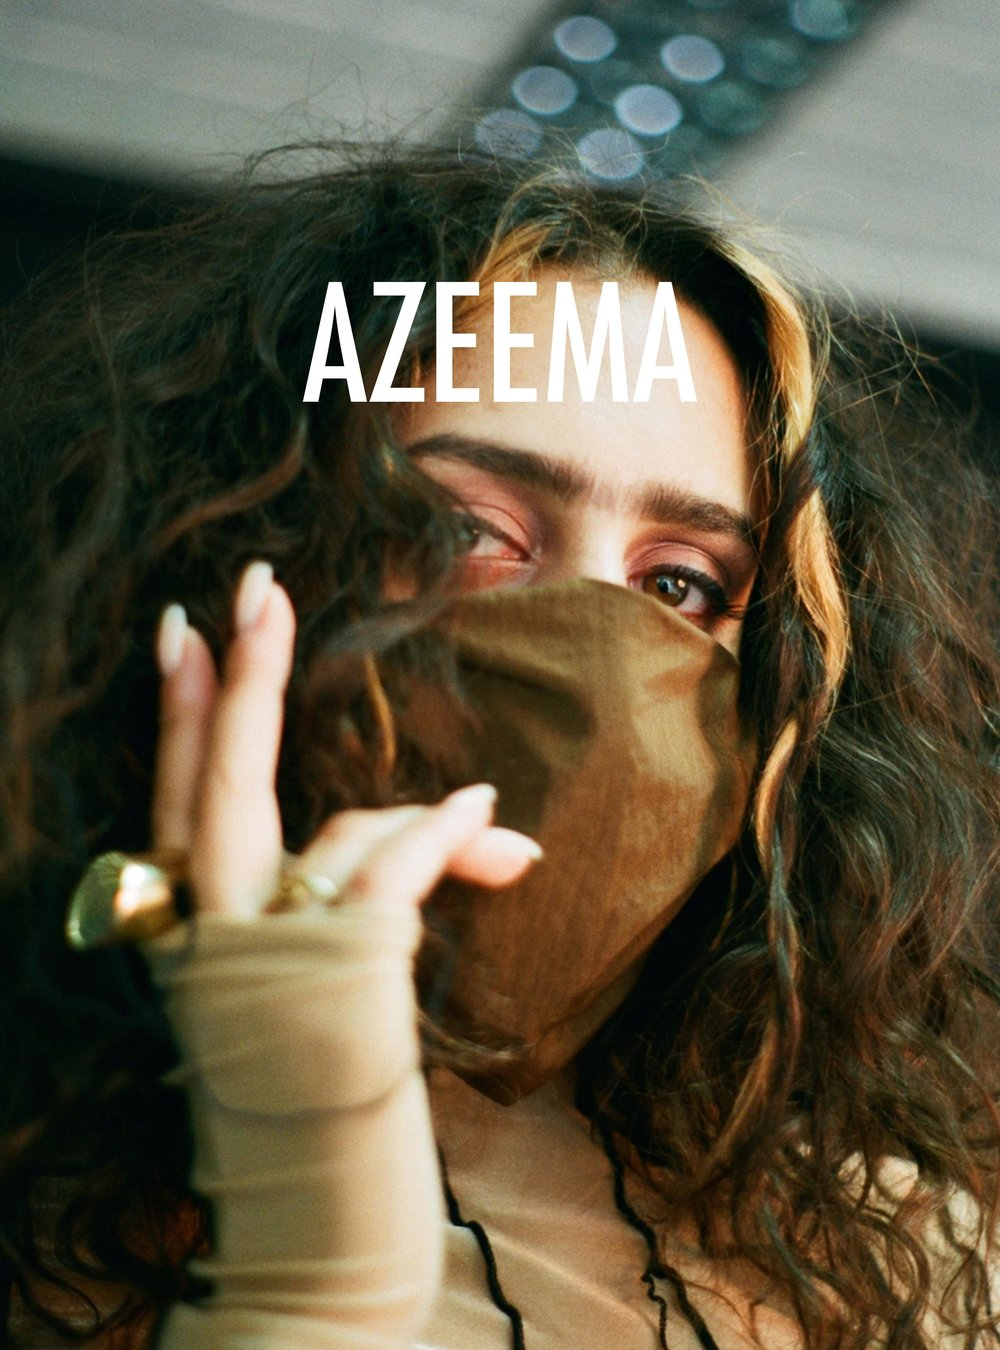 AZEEMA ISSUE 2 COVER.jpg